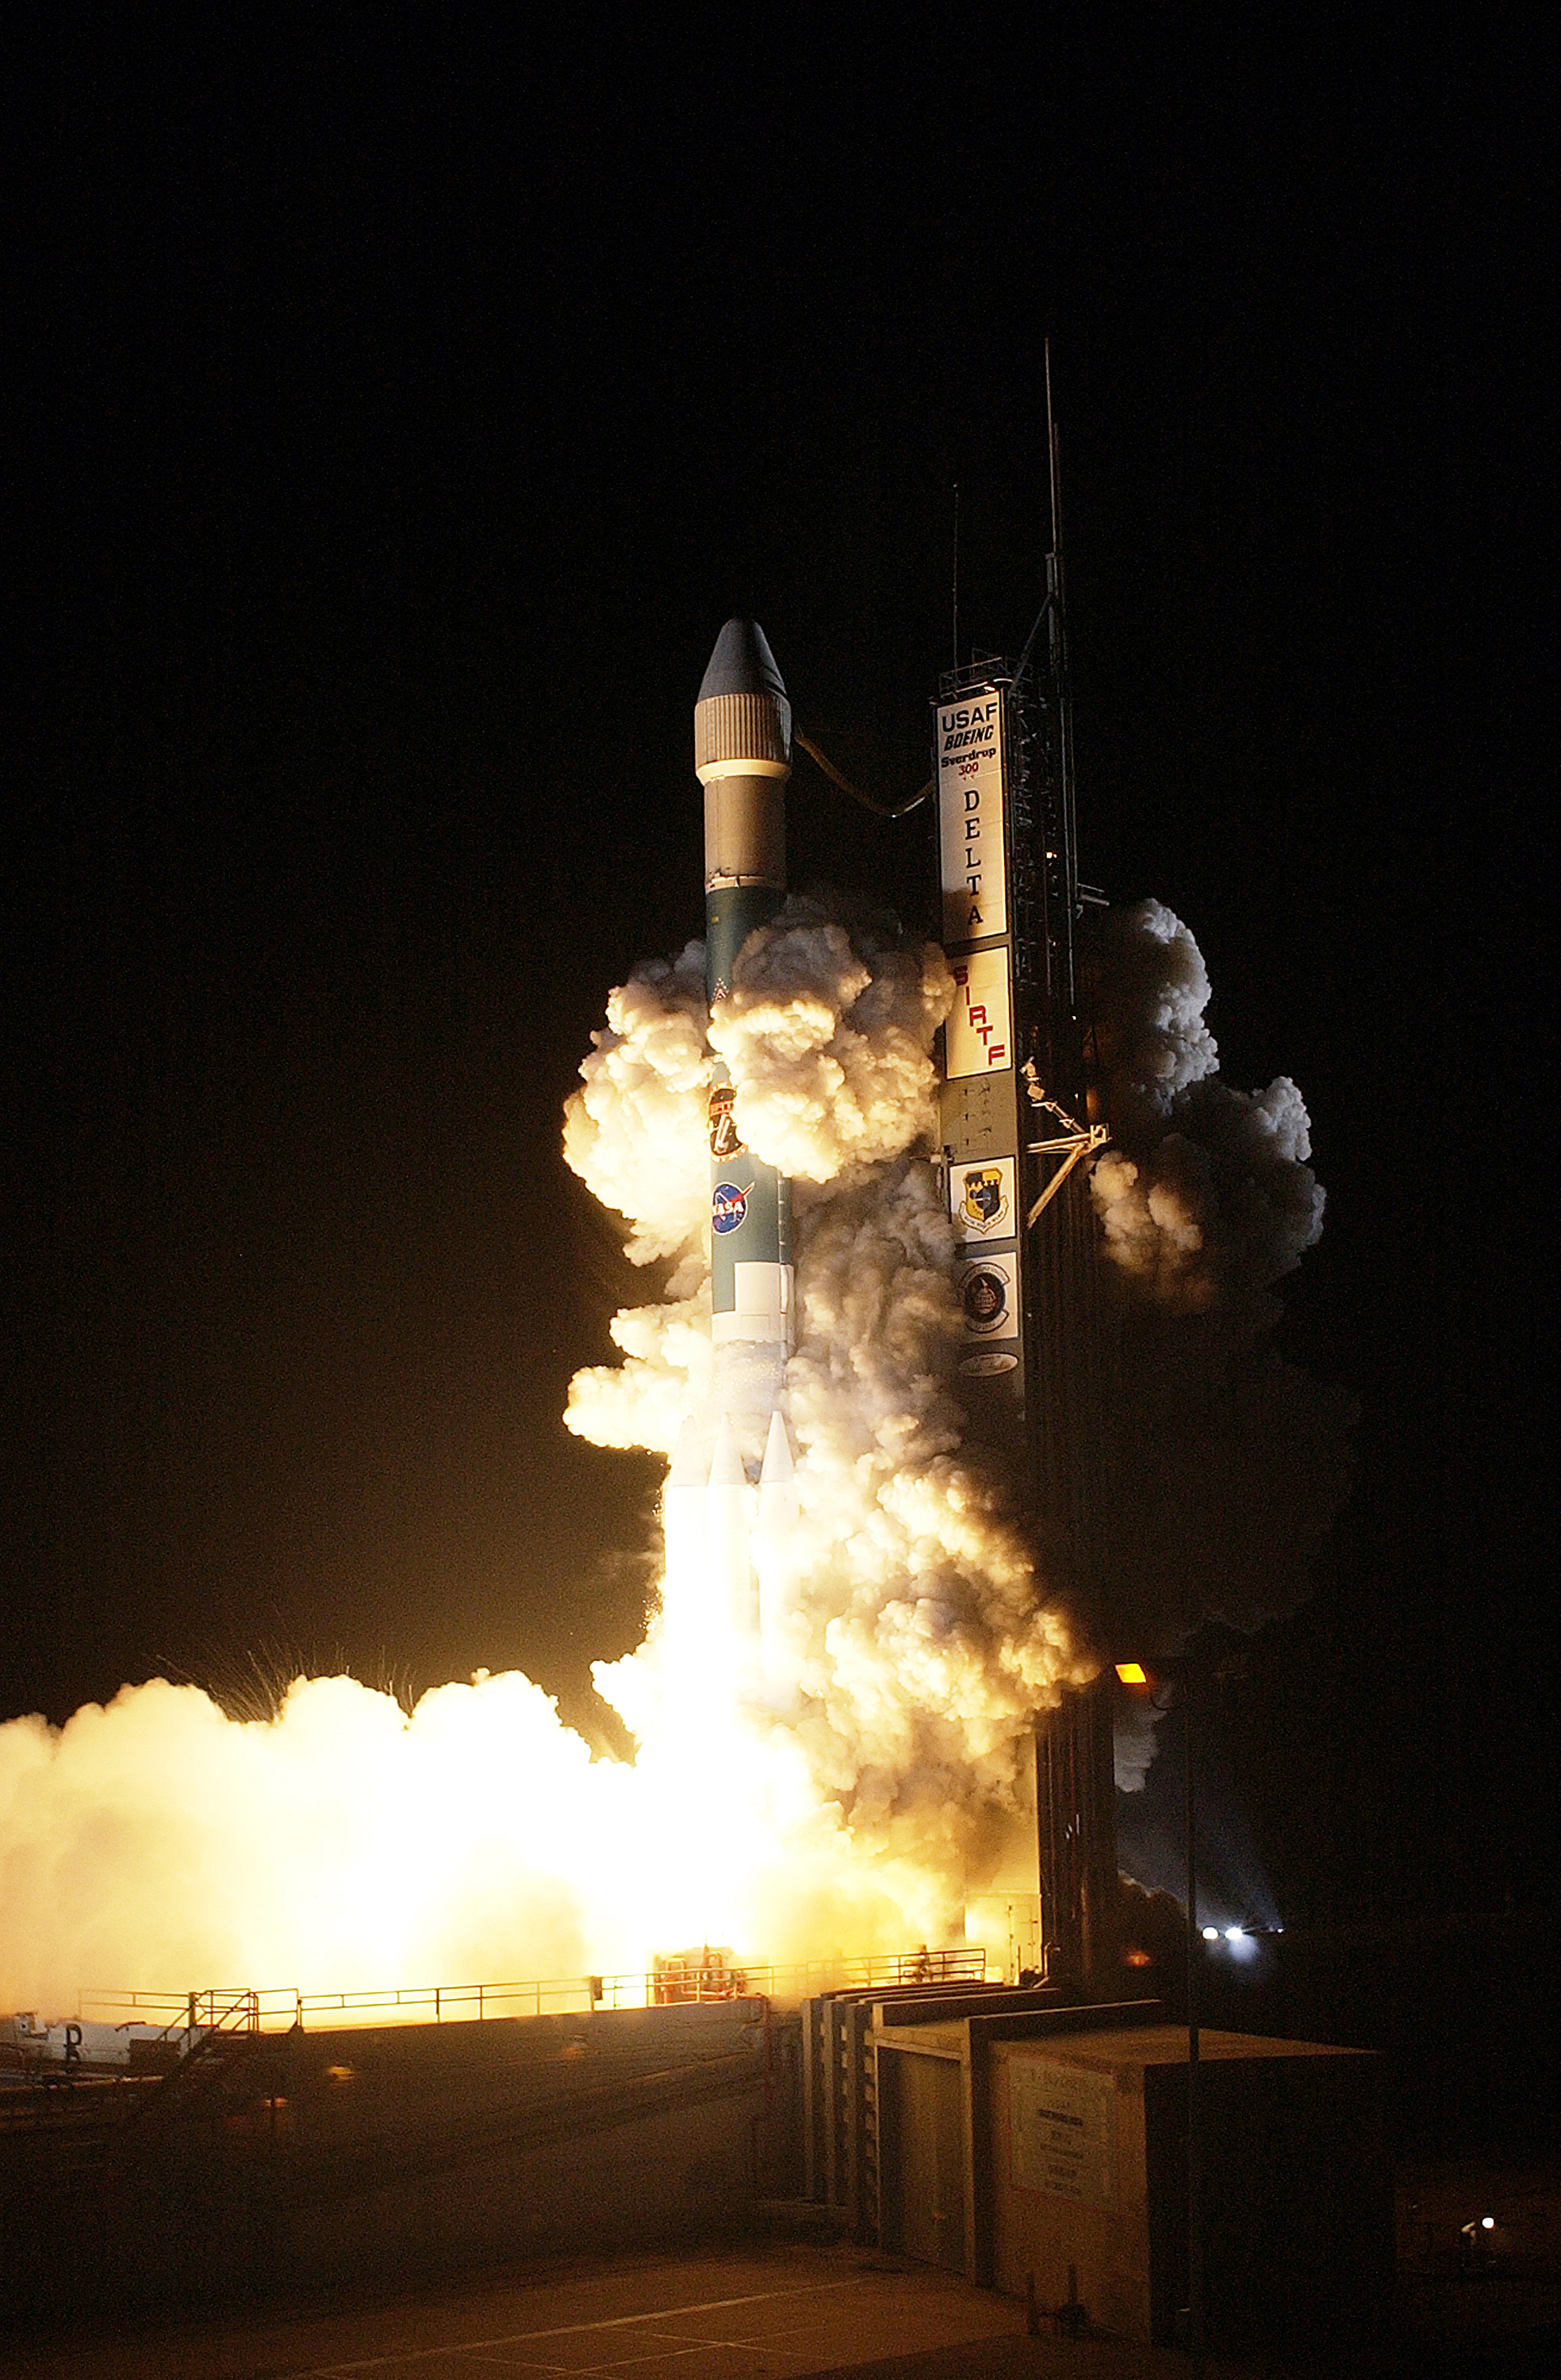 The Spitzer Space Telescope was launched on a Delta II rocket on August 25, 2003 from Cape Canaveral, Florida. Photo: NASA/KSC